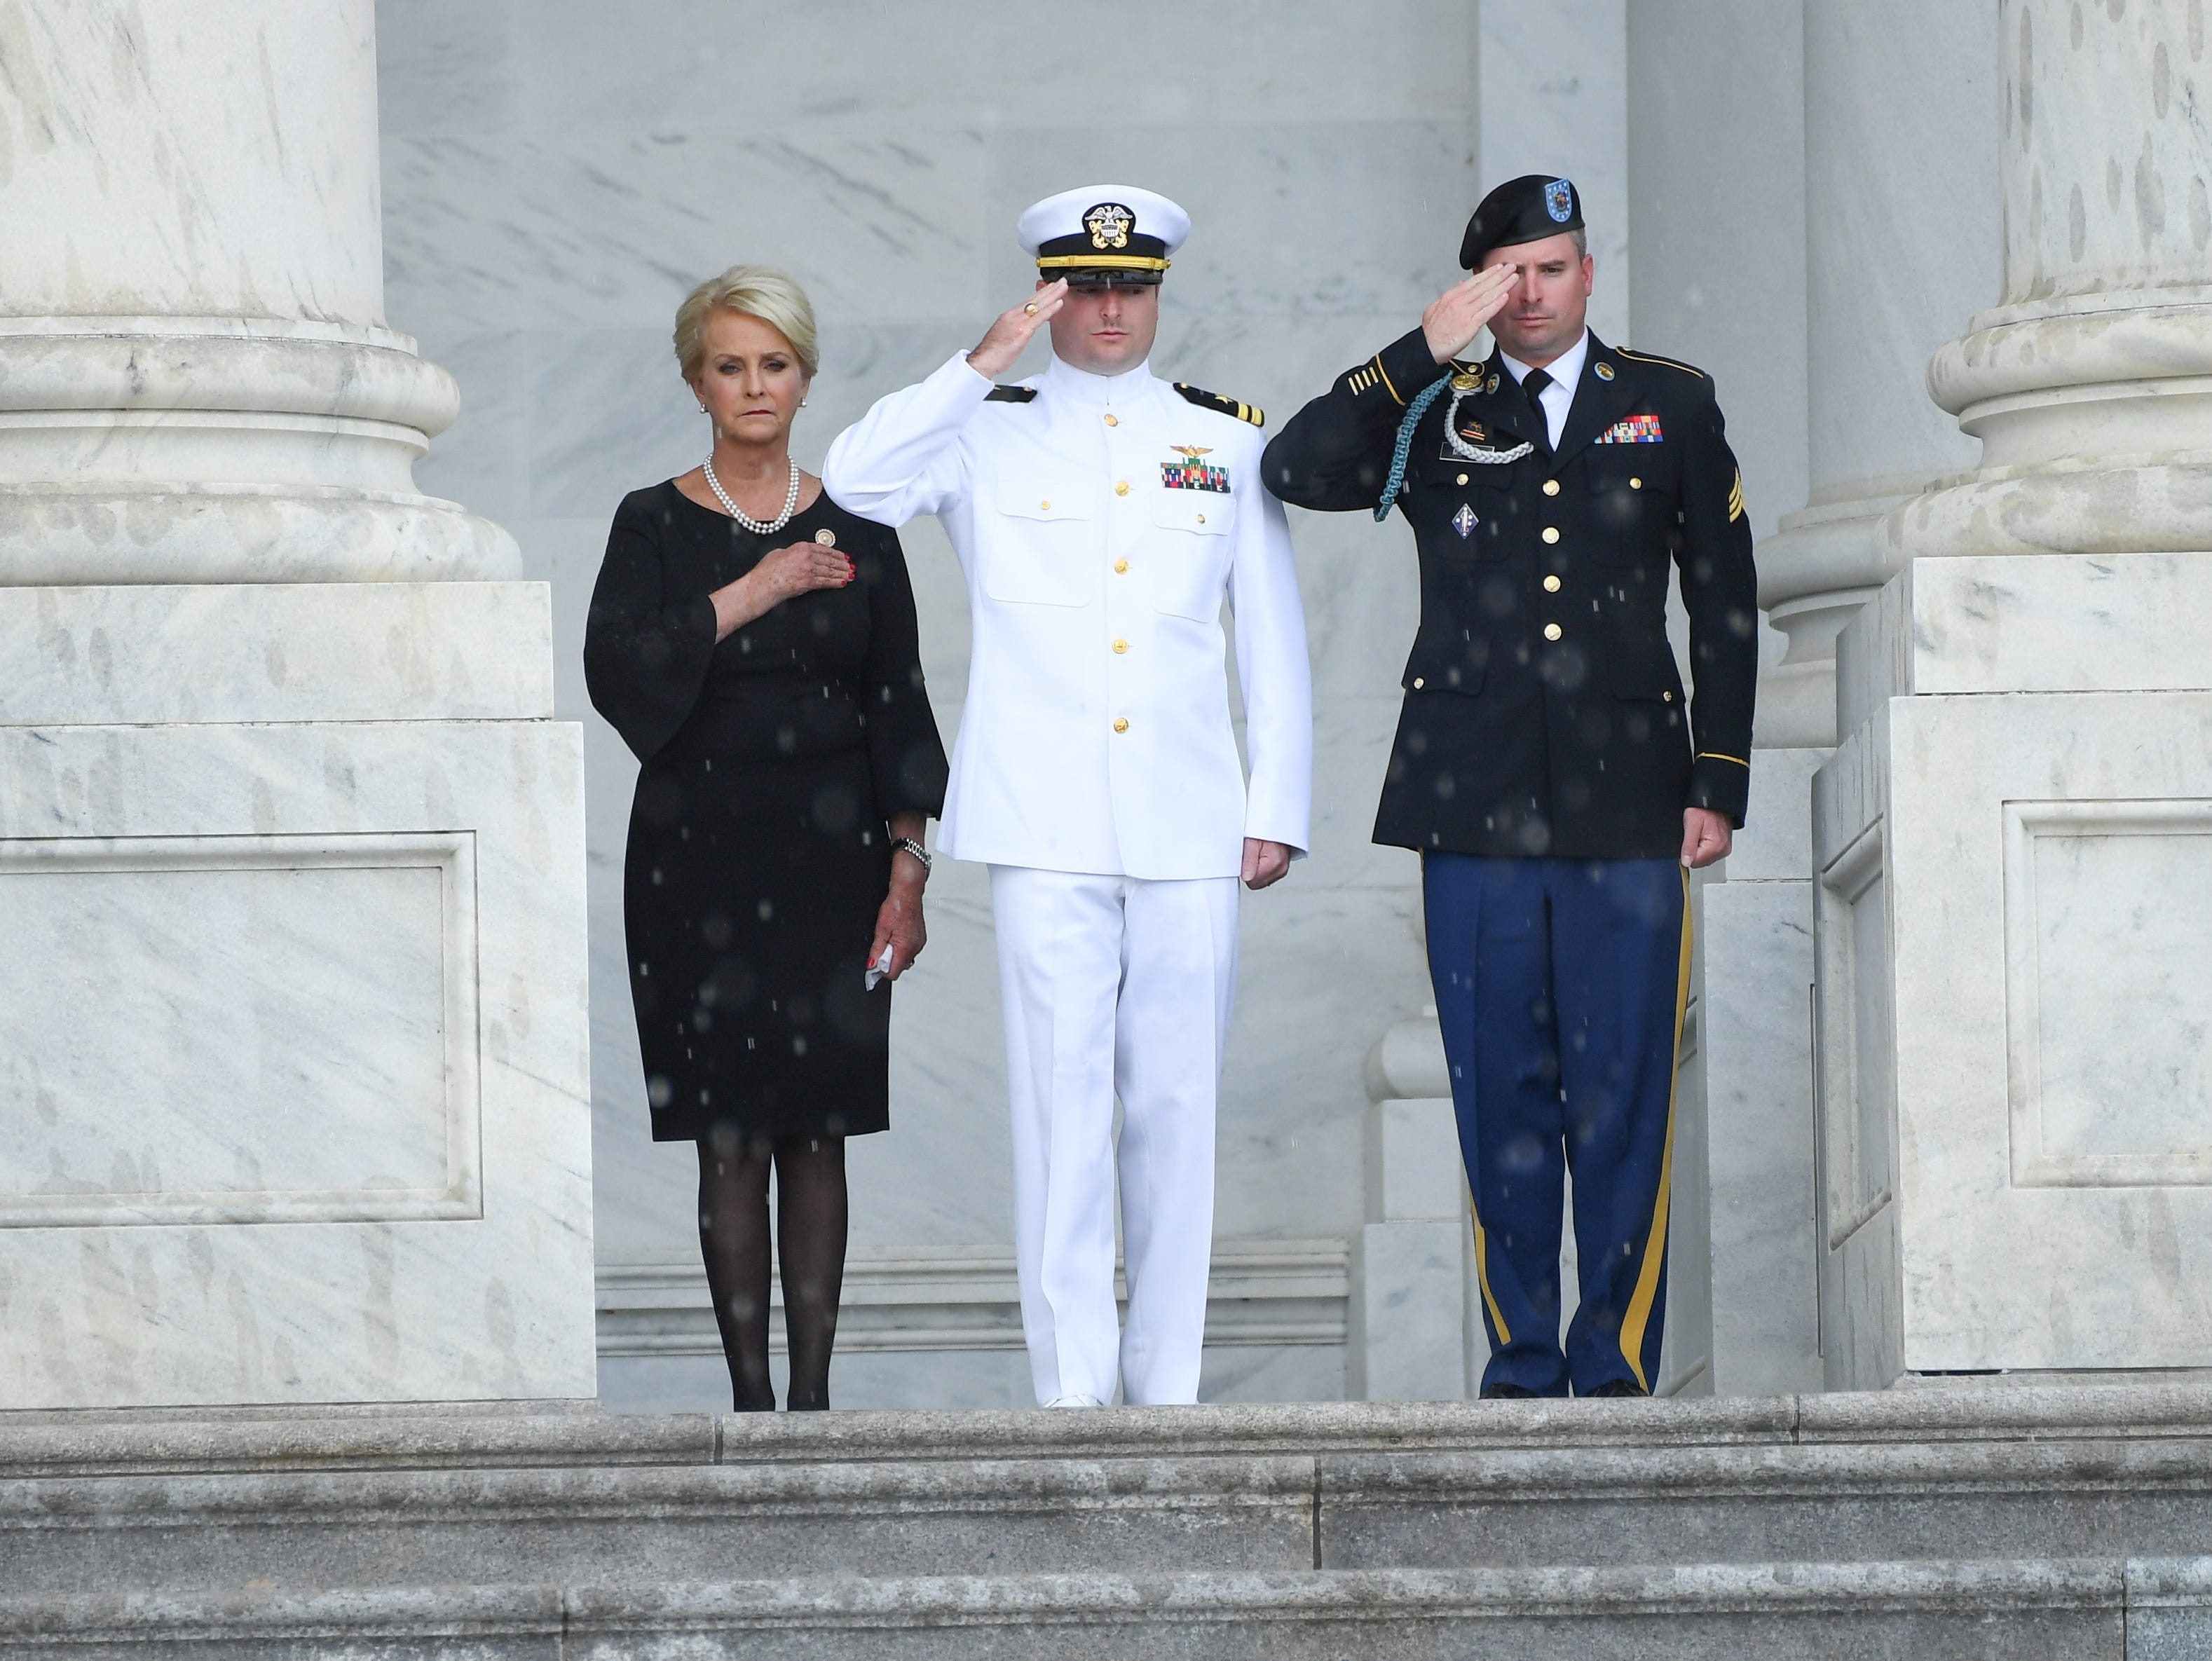 Cindy McCain, wife of Sen. John McCain, watches her husband's casket arrive at the U.S. Capitol as their two sons Jack and Jimmy McCain salute at the U.S. Capitol in Washington on Aug. 31, 2018.